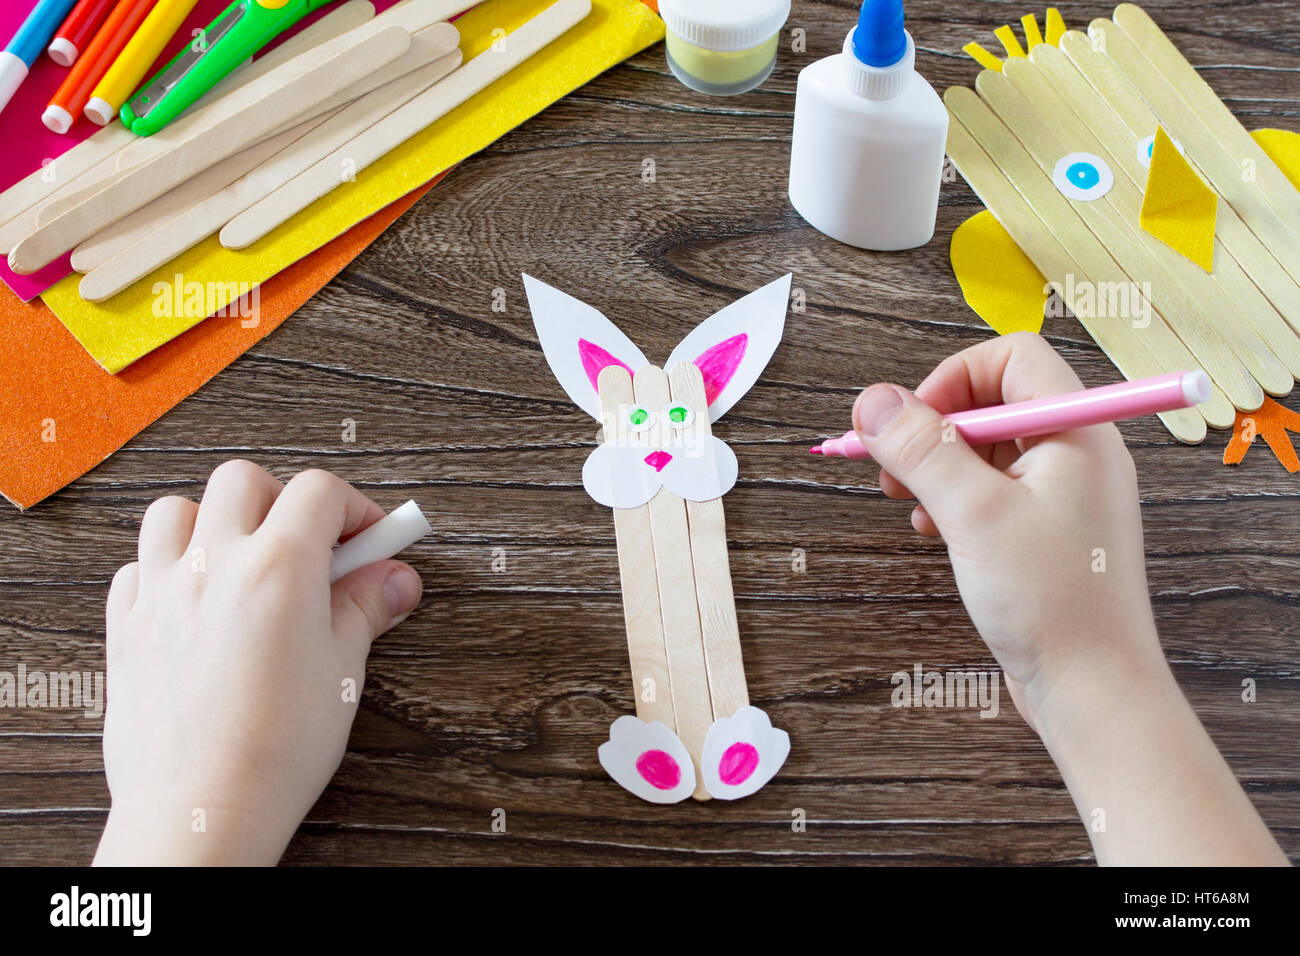 The child draws details of gift items childrens easter gift toy the child draws details of gift items childrens easter gift toy chicken and easter bunny hand made the project of childrens creativity needlewor negle Gallery